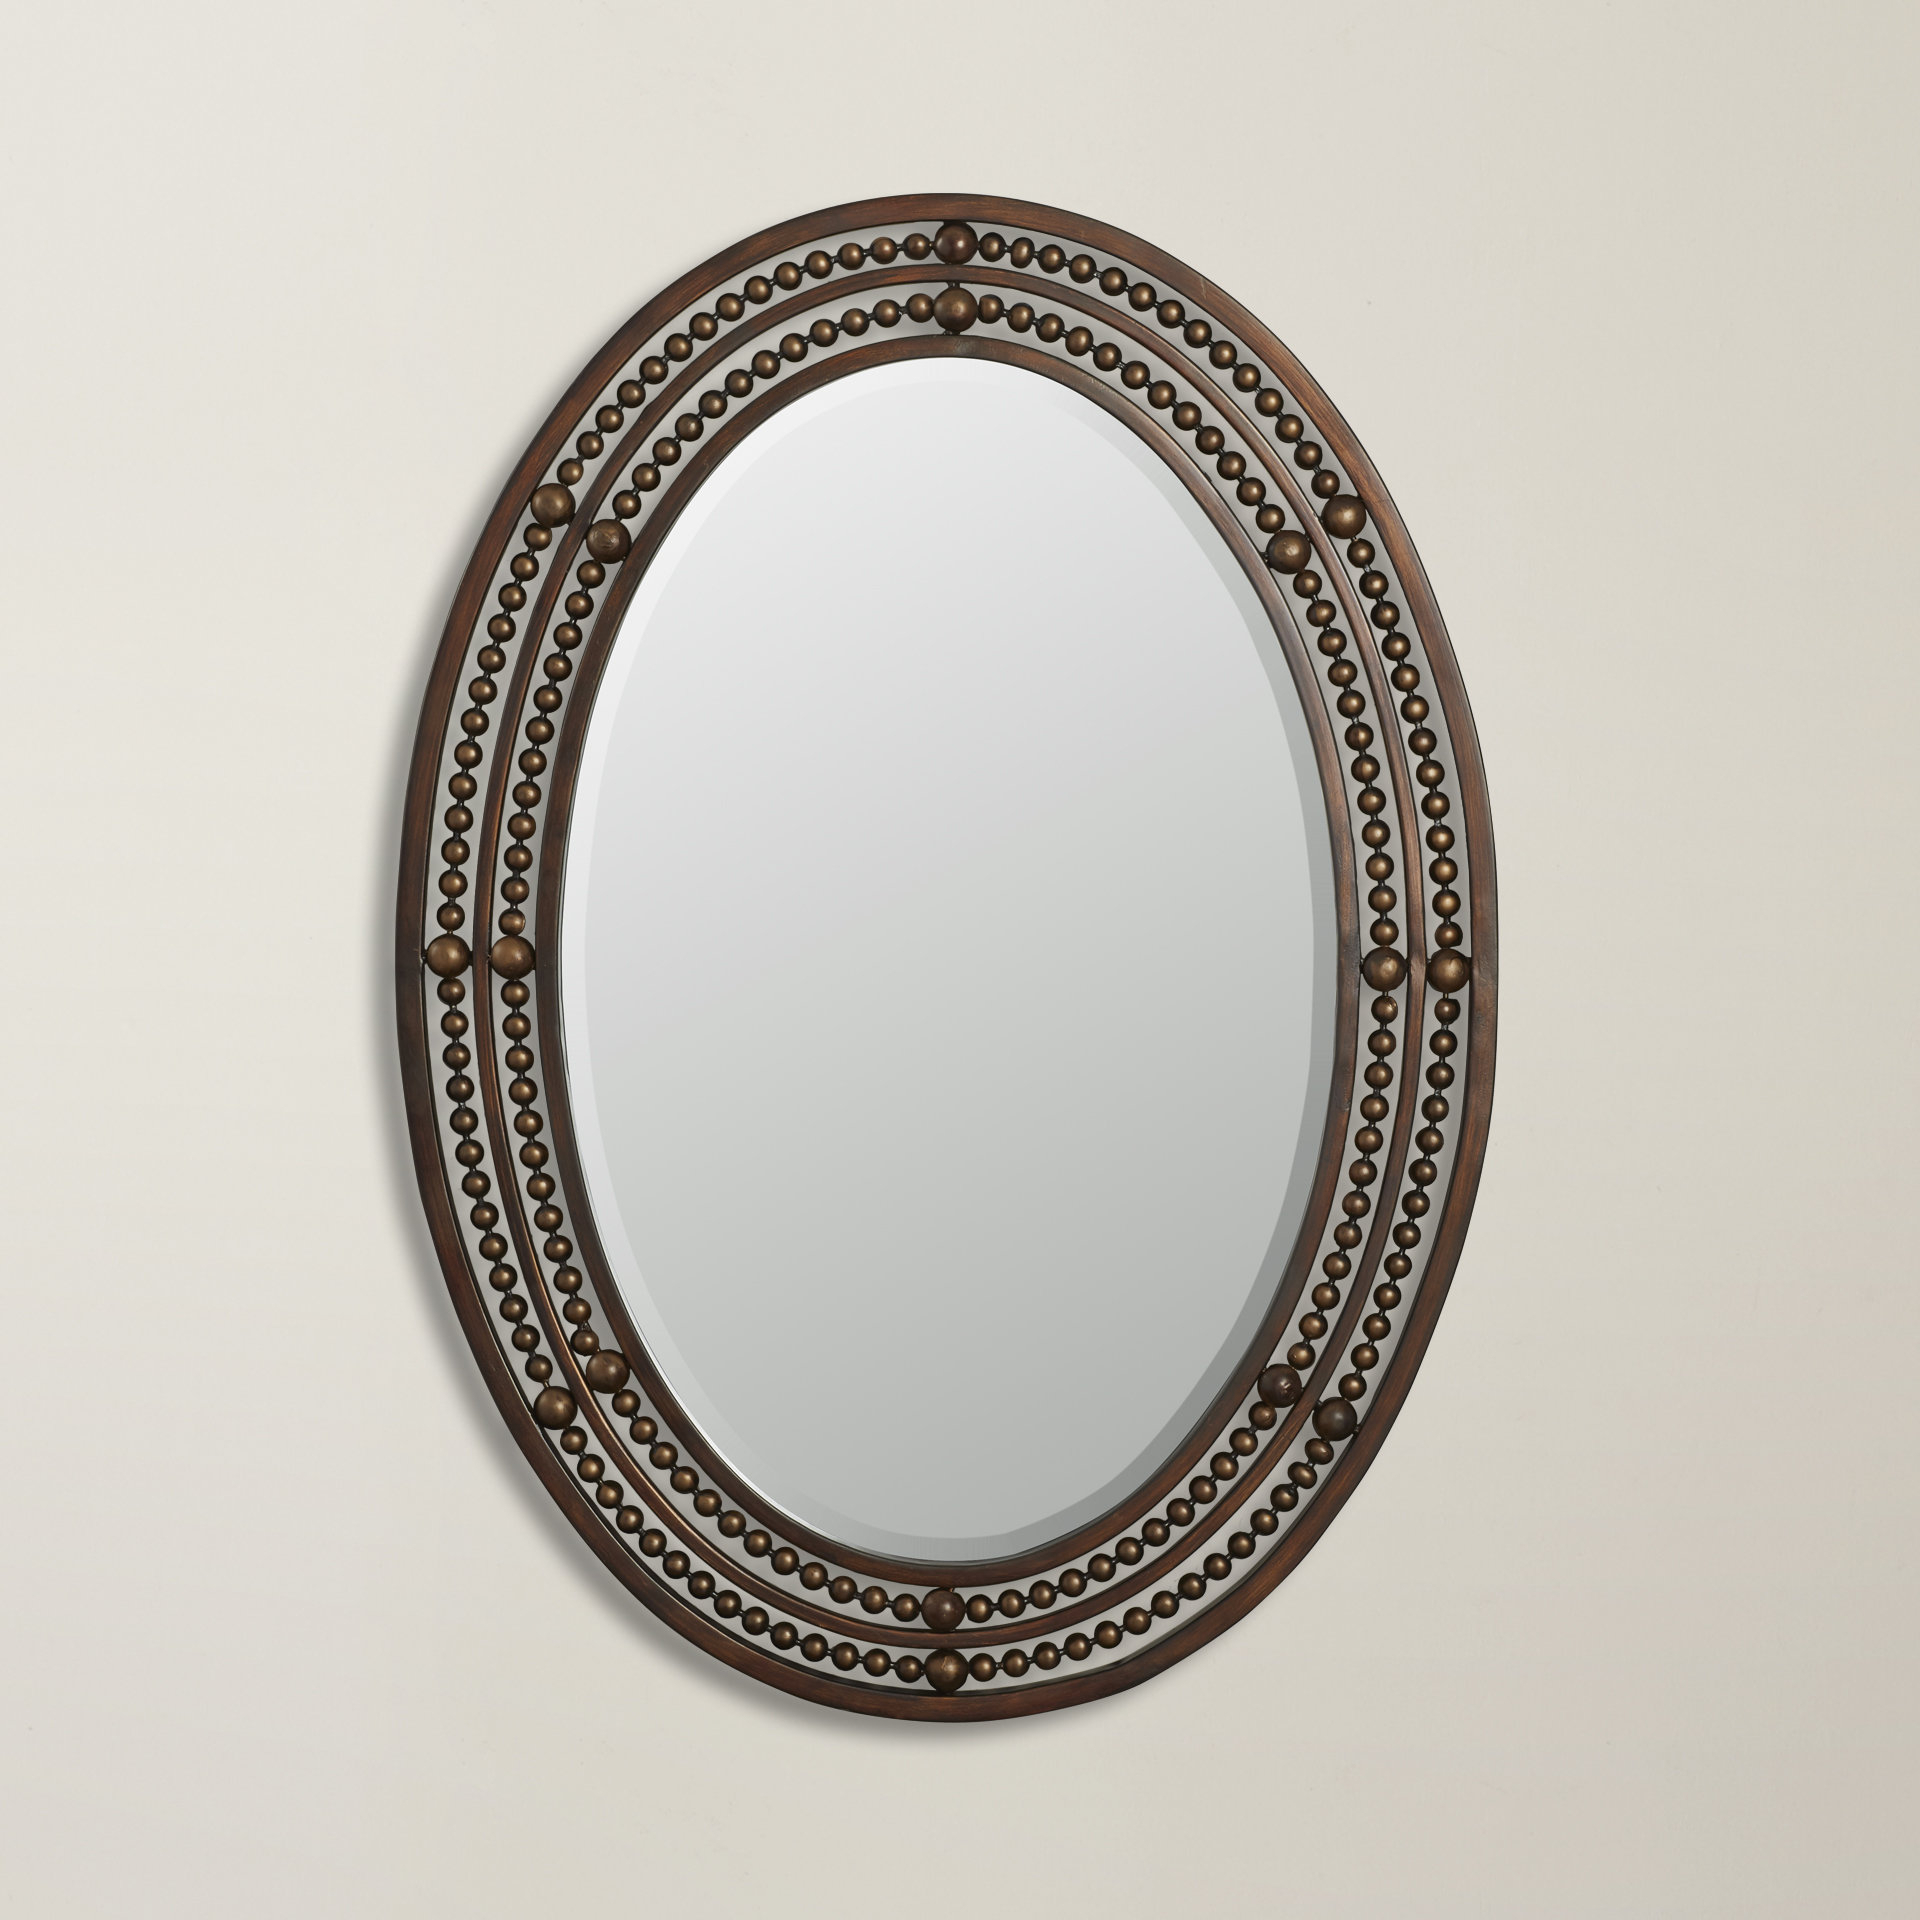 Favorite Leeper Oval Wall Mirror Intended For Pfister Oval Wood Wall Mirrors (View 14 of 20)